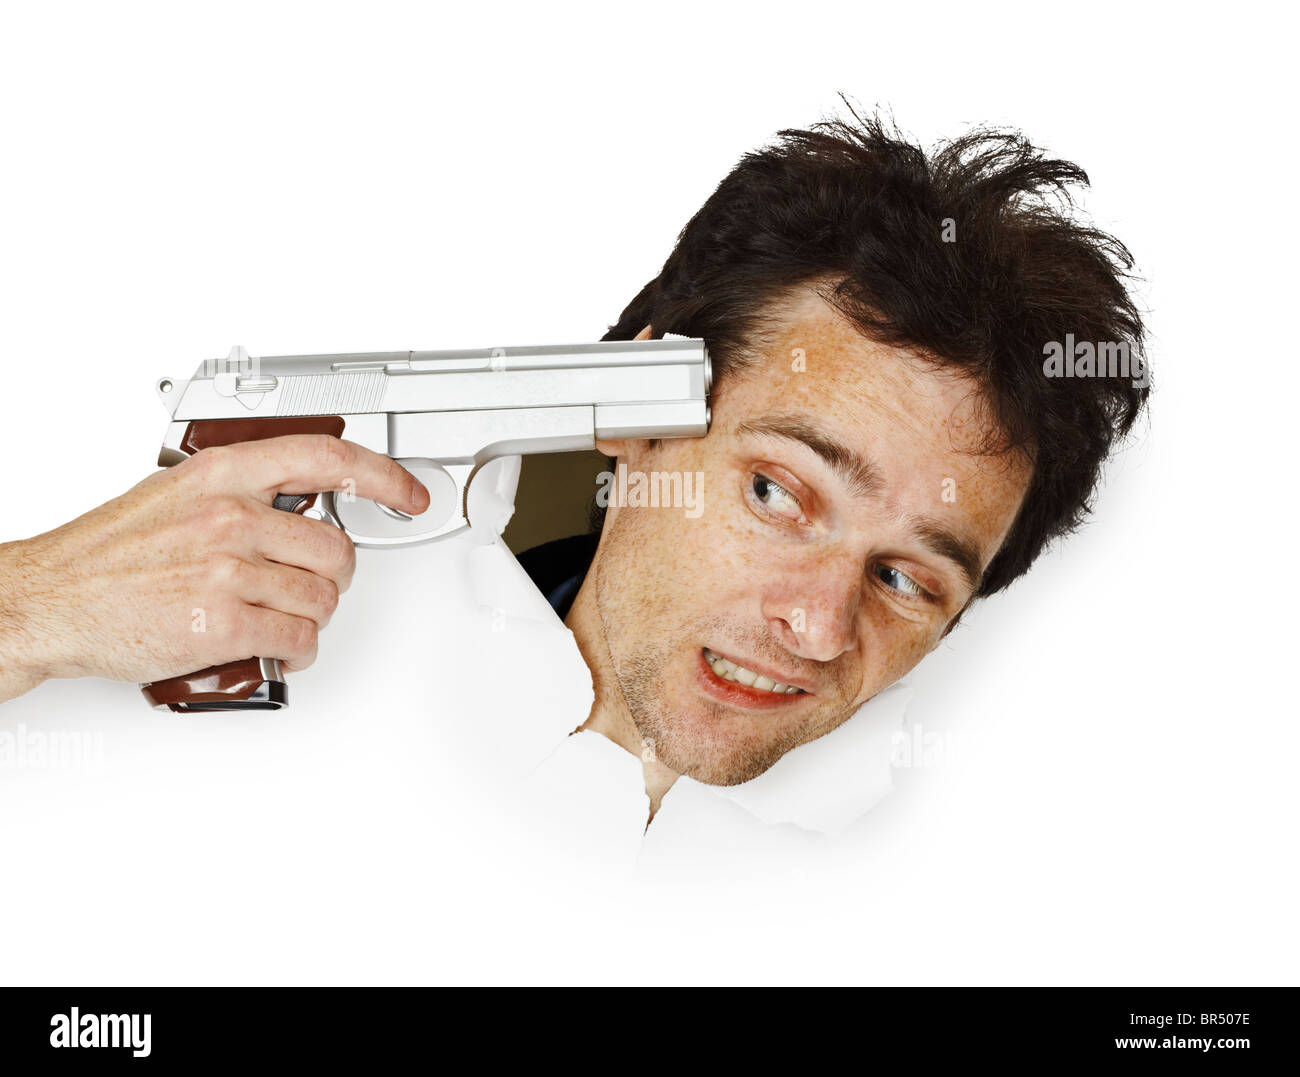 The gun aims at the head of a frightened man - Stock Image